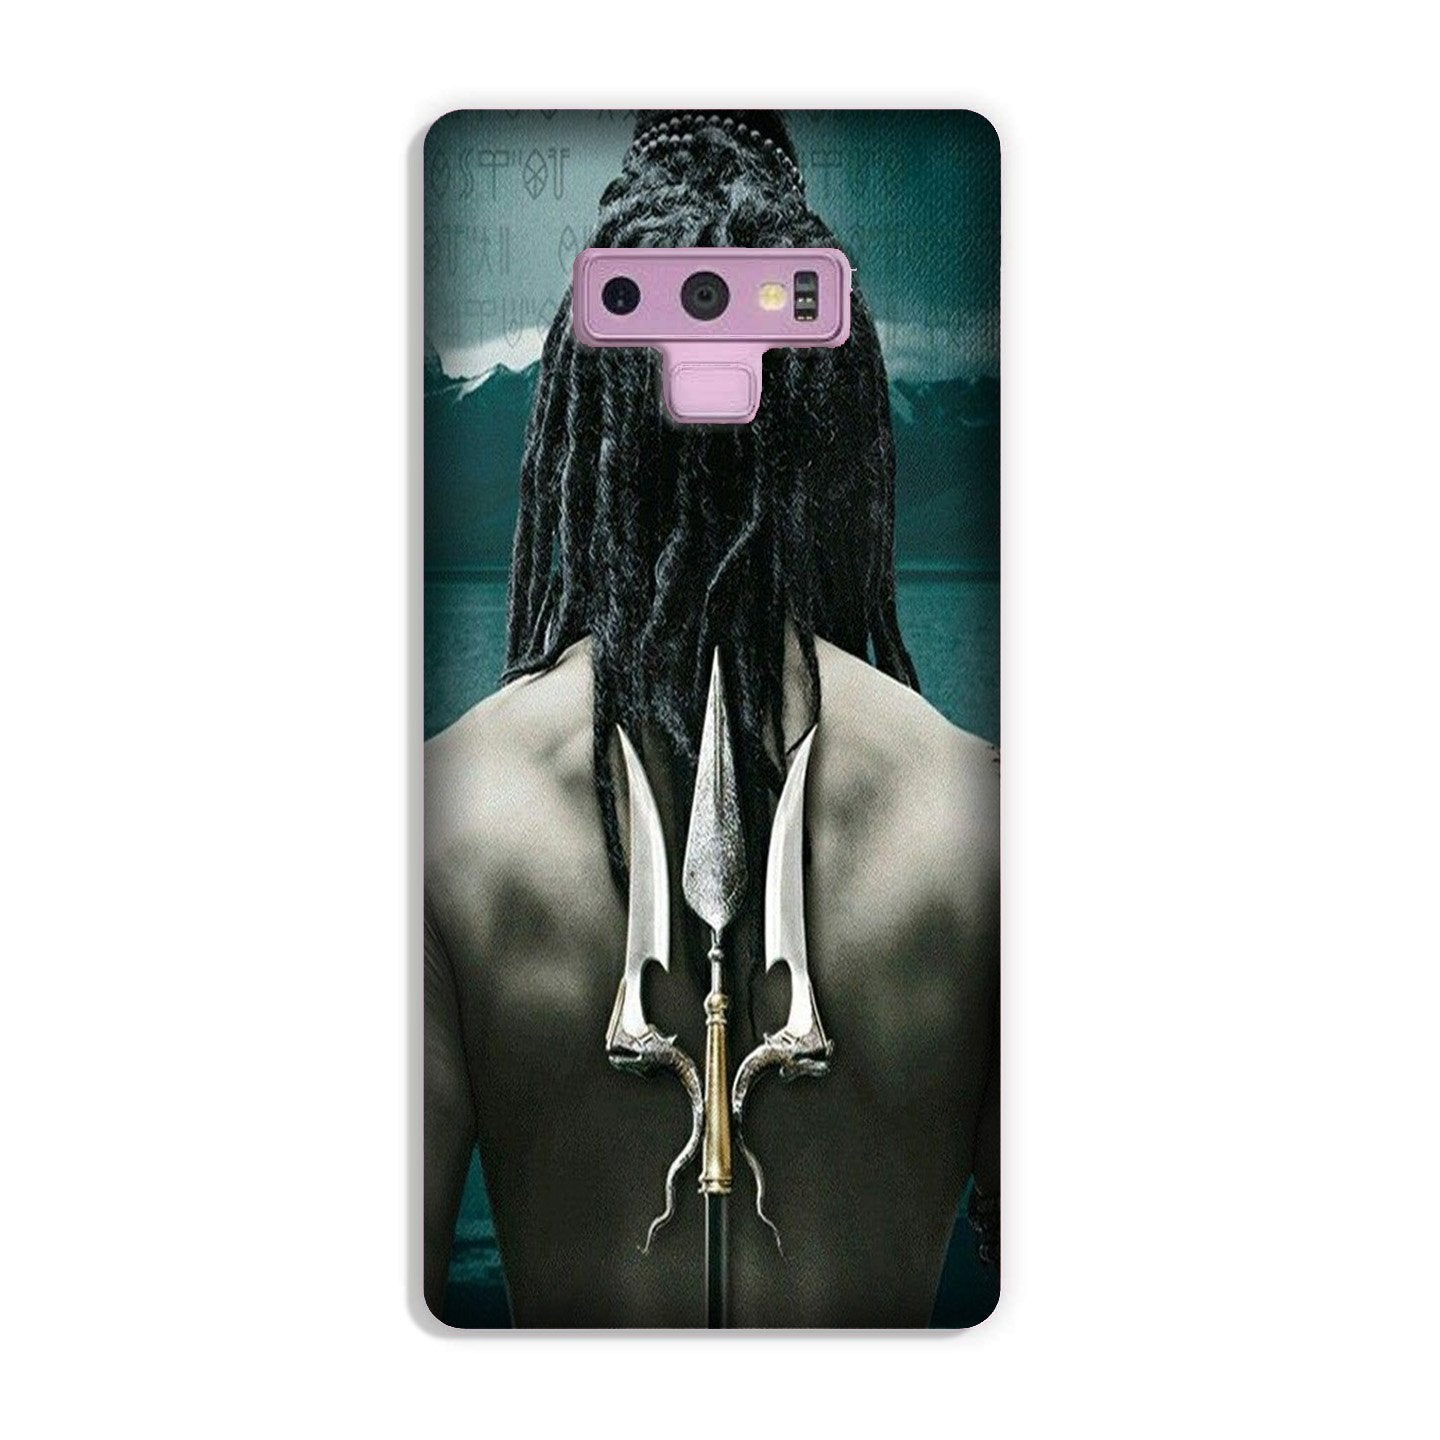 Mahakal Case for Galaxy Note 9